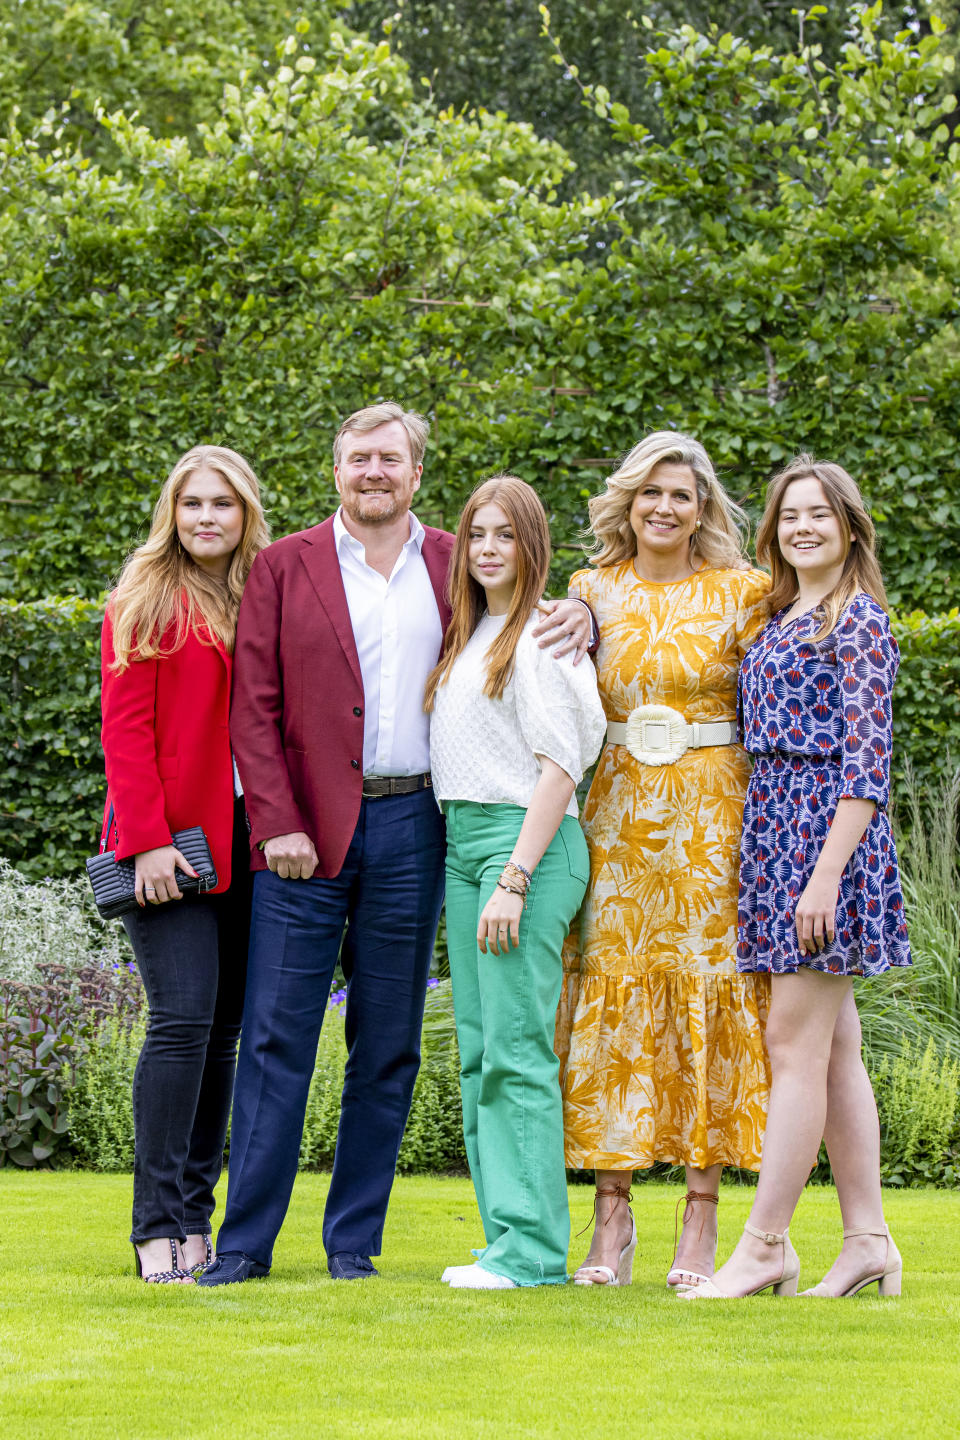 THE HAGUE, NETHERLANDS - JULY 16: King Willem-Alexander of The Netherlands, Queen Maxima of The Netherlands, Princess Amalia of The Netherlands, Princess Alexia of The Netherlands and Princess Ariane of The Netherlands pose for the media at Huis ten Bosch Palace on July 16, 2021 in The Hague, Netherlands. (Photo by Patrick van Katwijk/Getty Images)